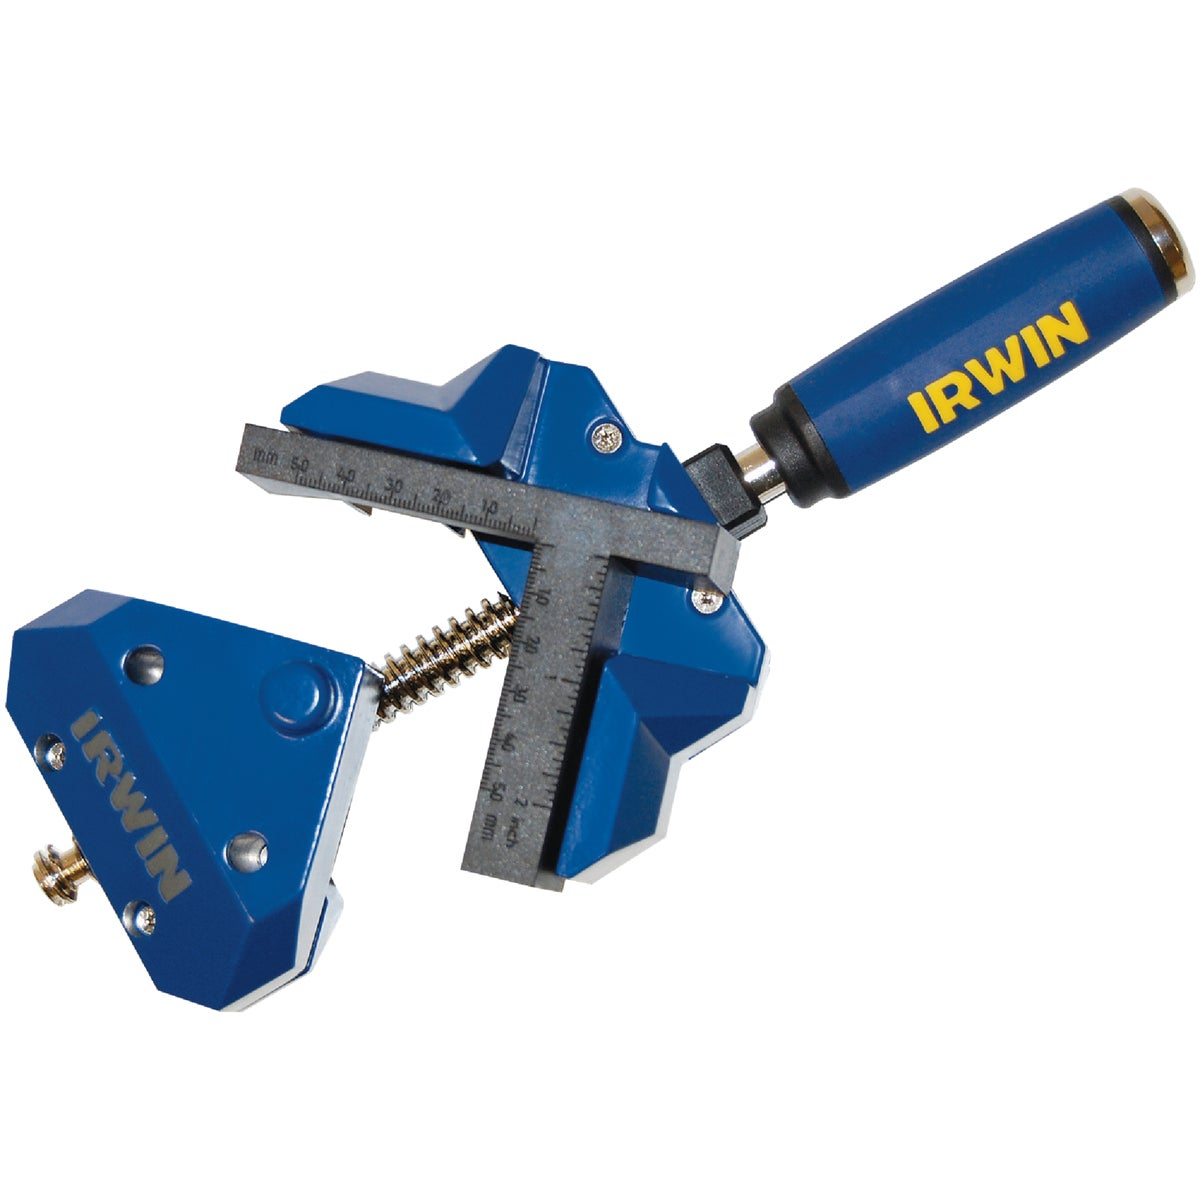 90 DEGREE ANGLE CLAMP - 226410 by Irwin Industr Tool